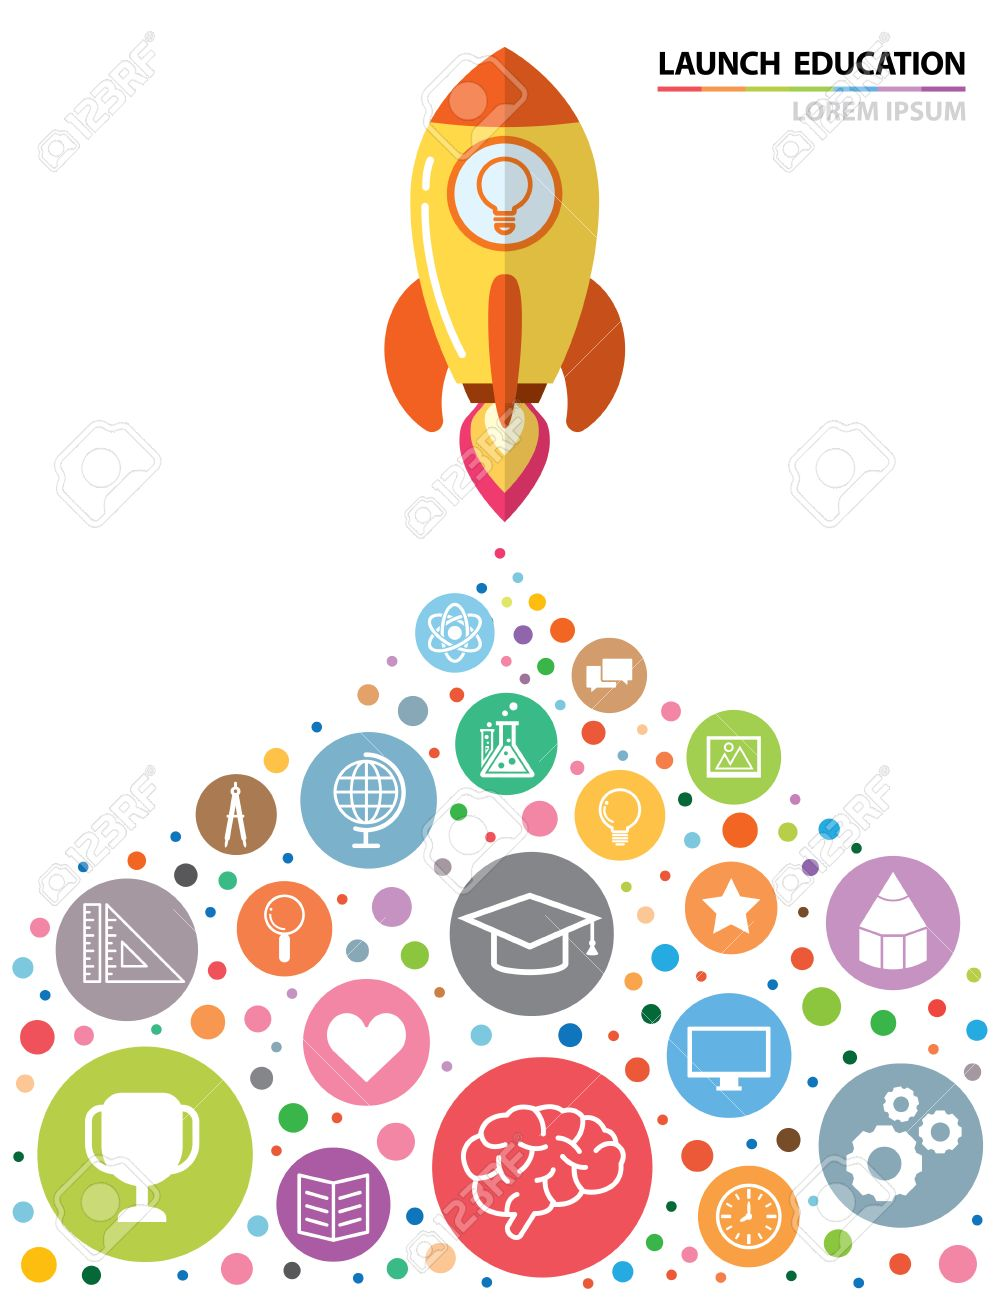 Poster design education - Launch Rocket With Education Icon Creative Concept Vector Illustration Flat Design Can